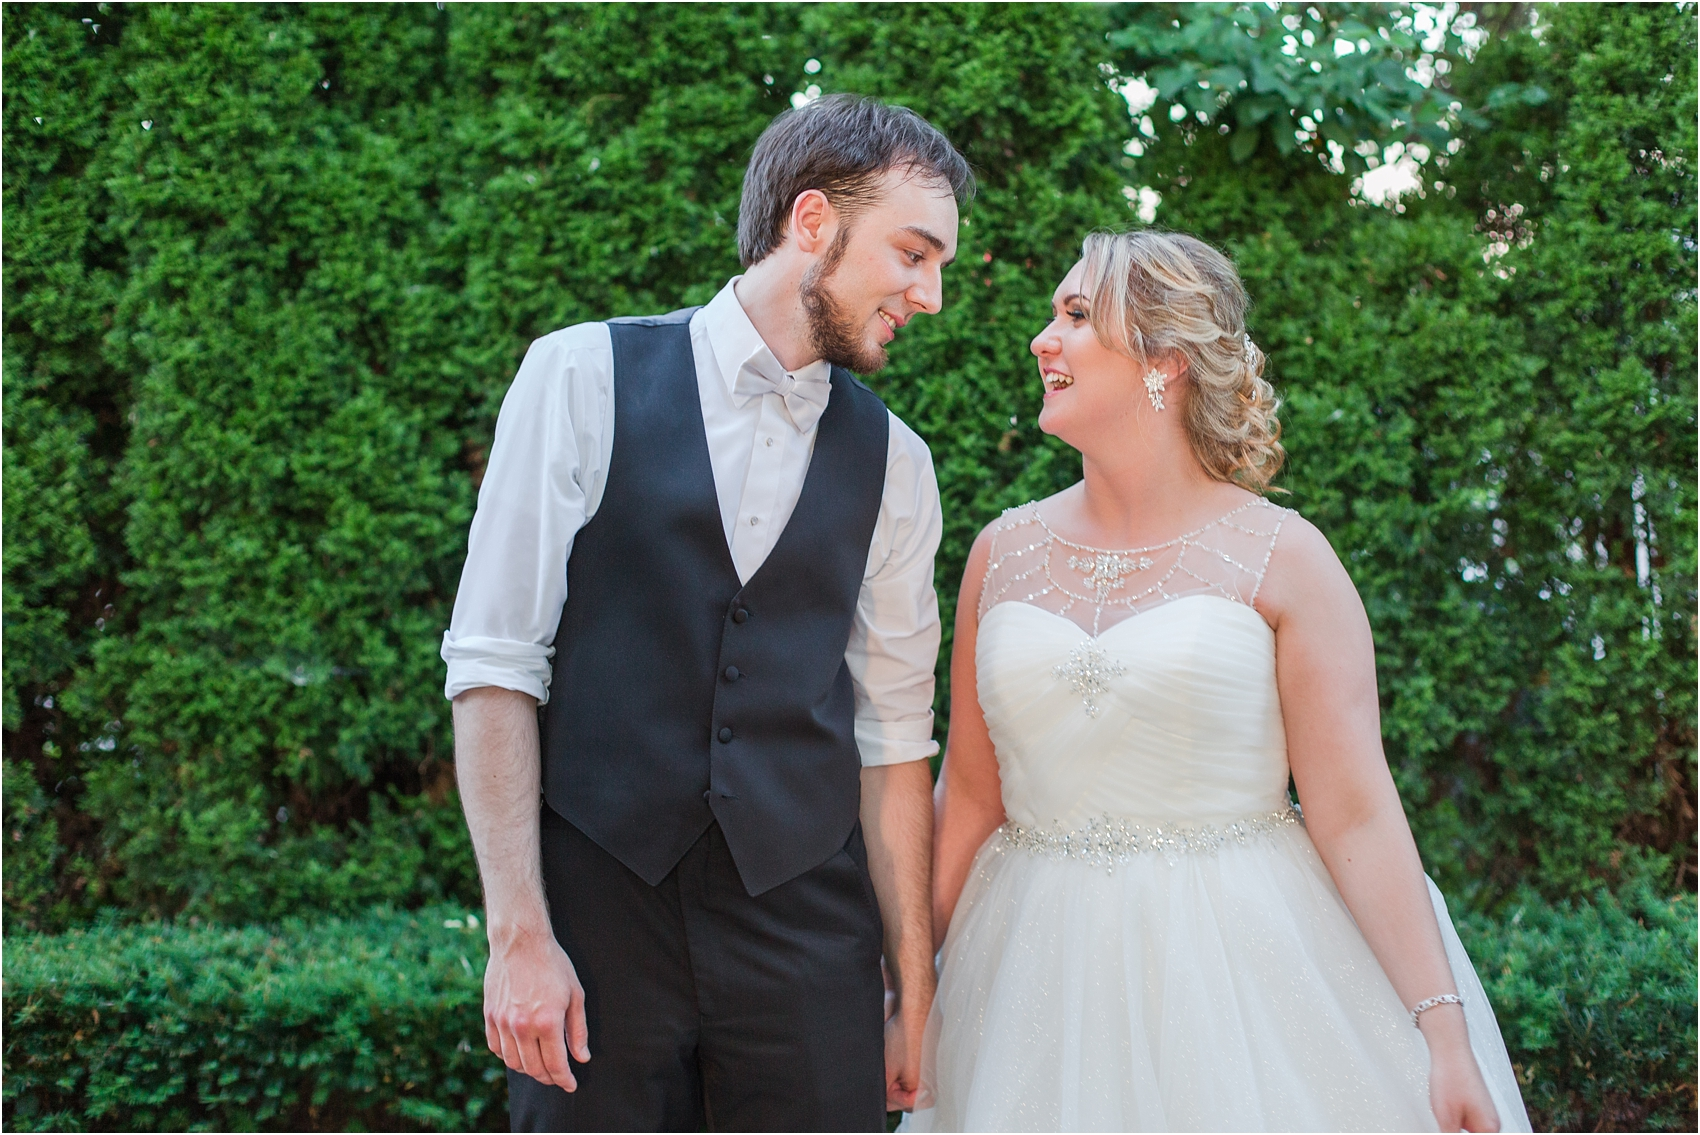 lord-of-the-rings-inspired-wedding-photos-at-crystal-gardens-in-howell-mi-by-courtney-carolyn-photography_0110.jpg